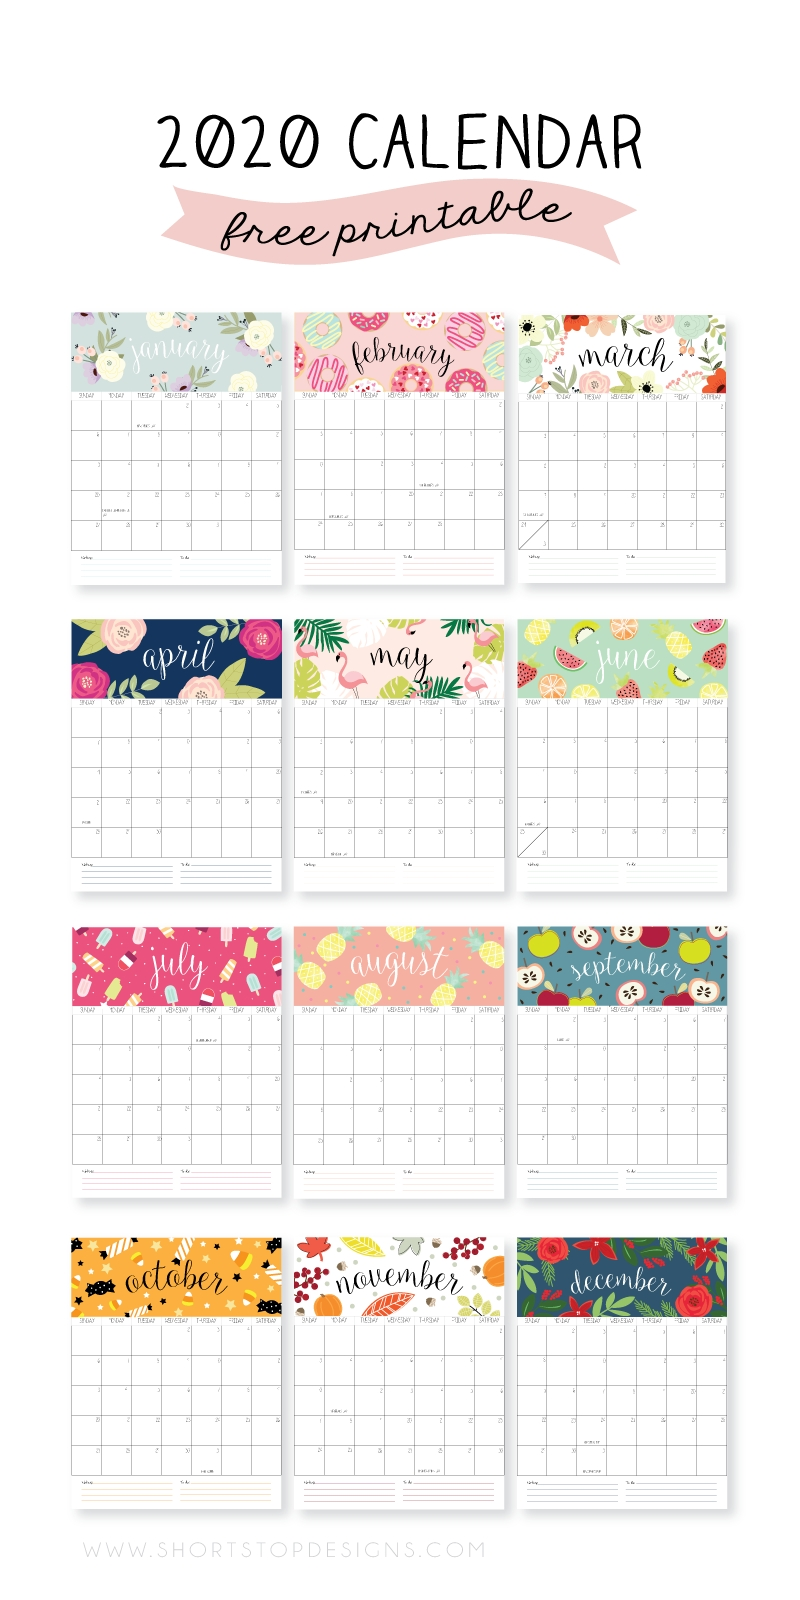 2020 Printable Calendar – Short Stop Designs with 2020 Design Calendar Printable Free